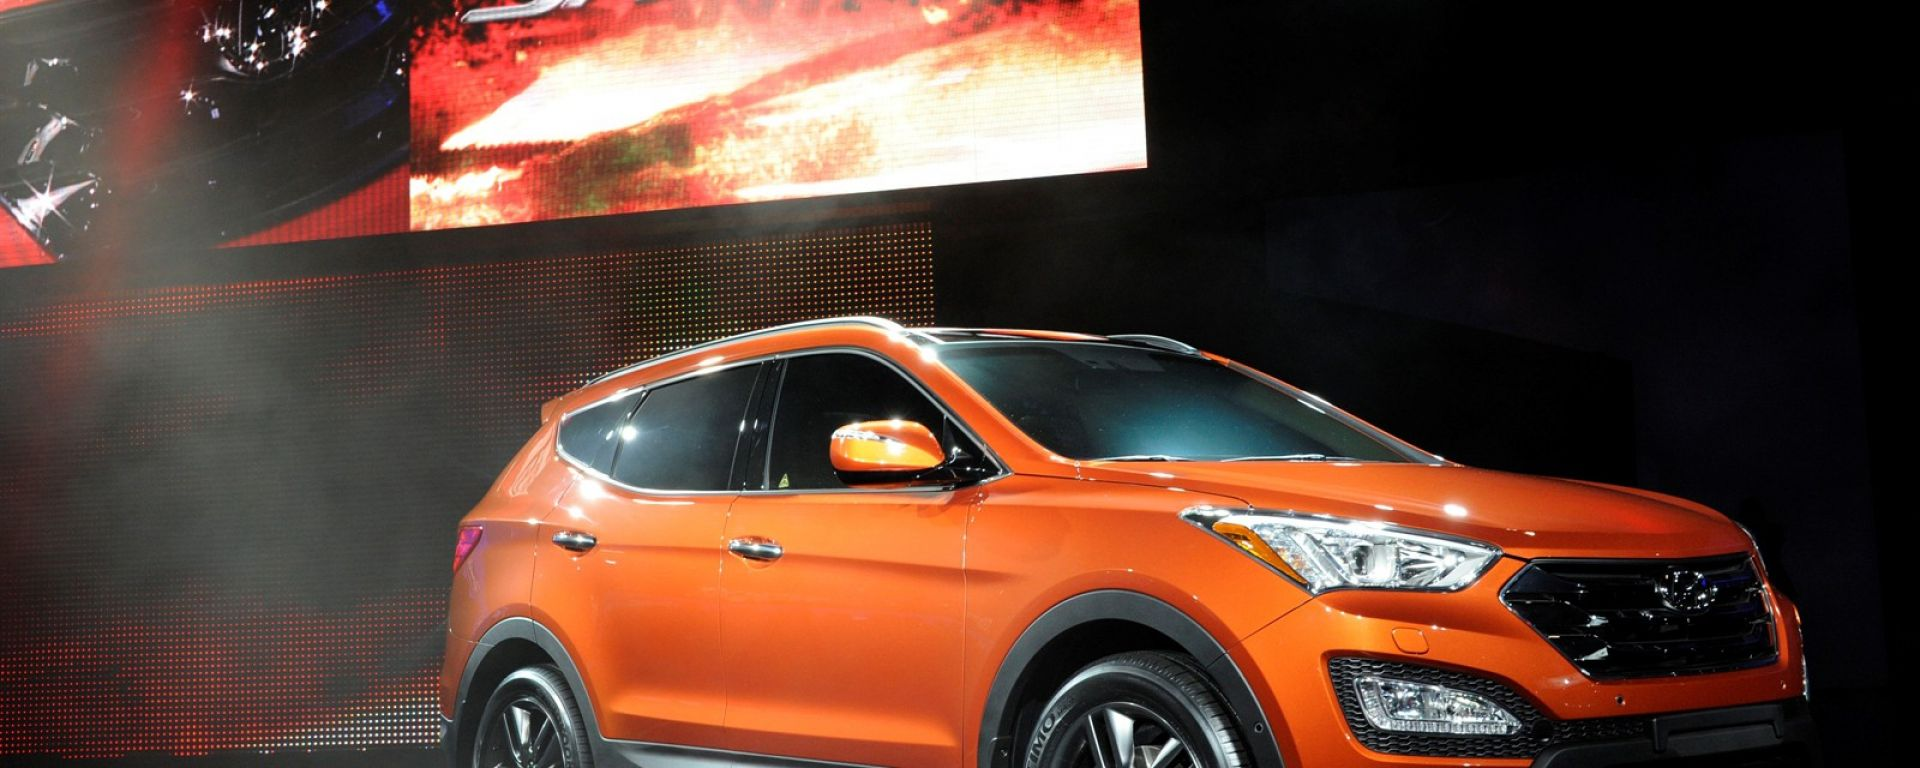 Hyundai Santa Fe 2013, nuovo video sul design